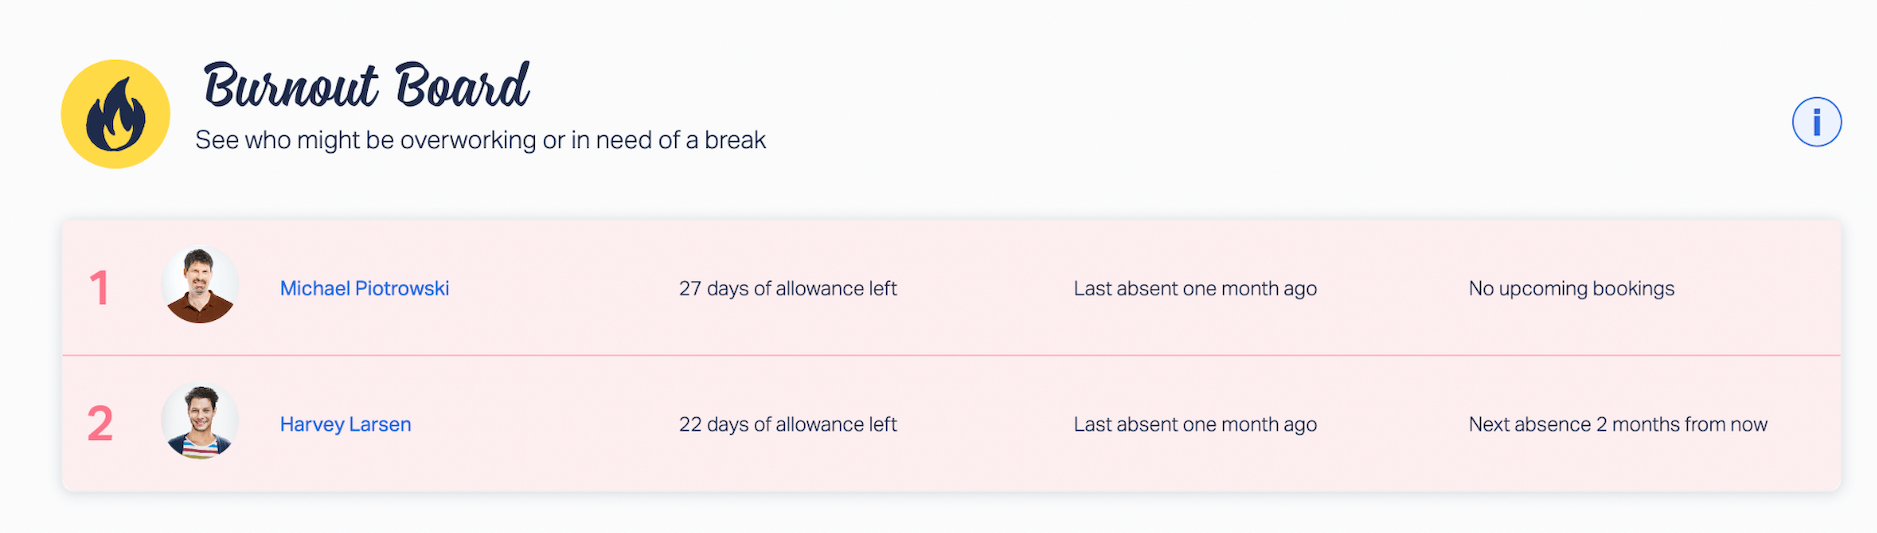 Timetastic's Burnout Board: See who might be overworking or in need of a break.